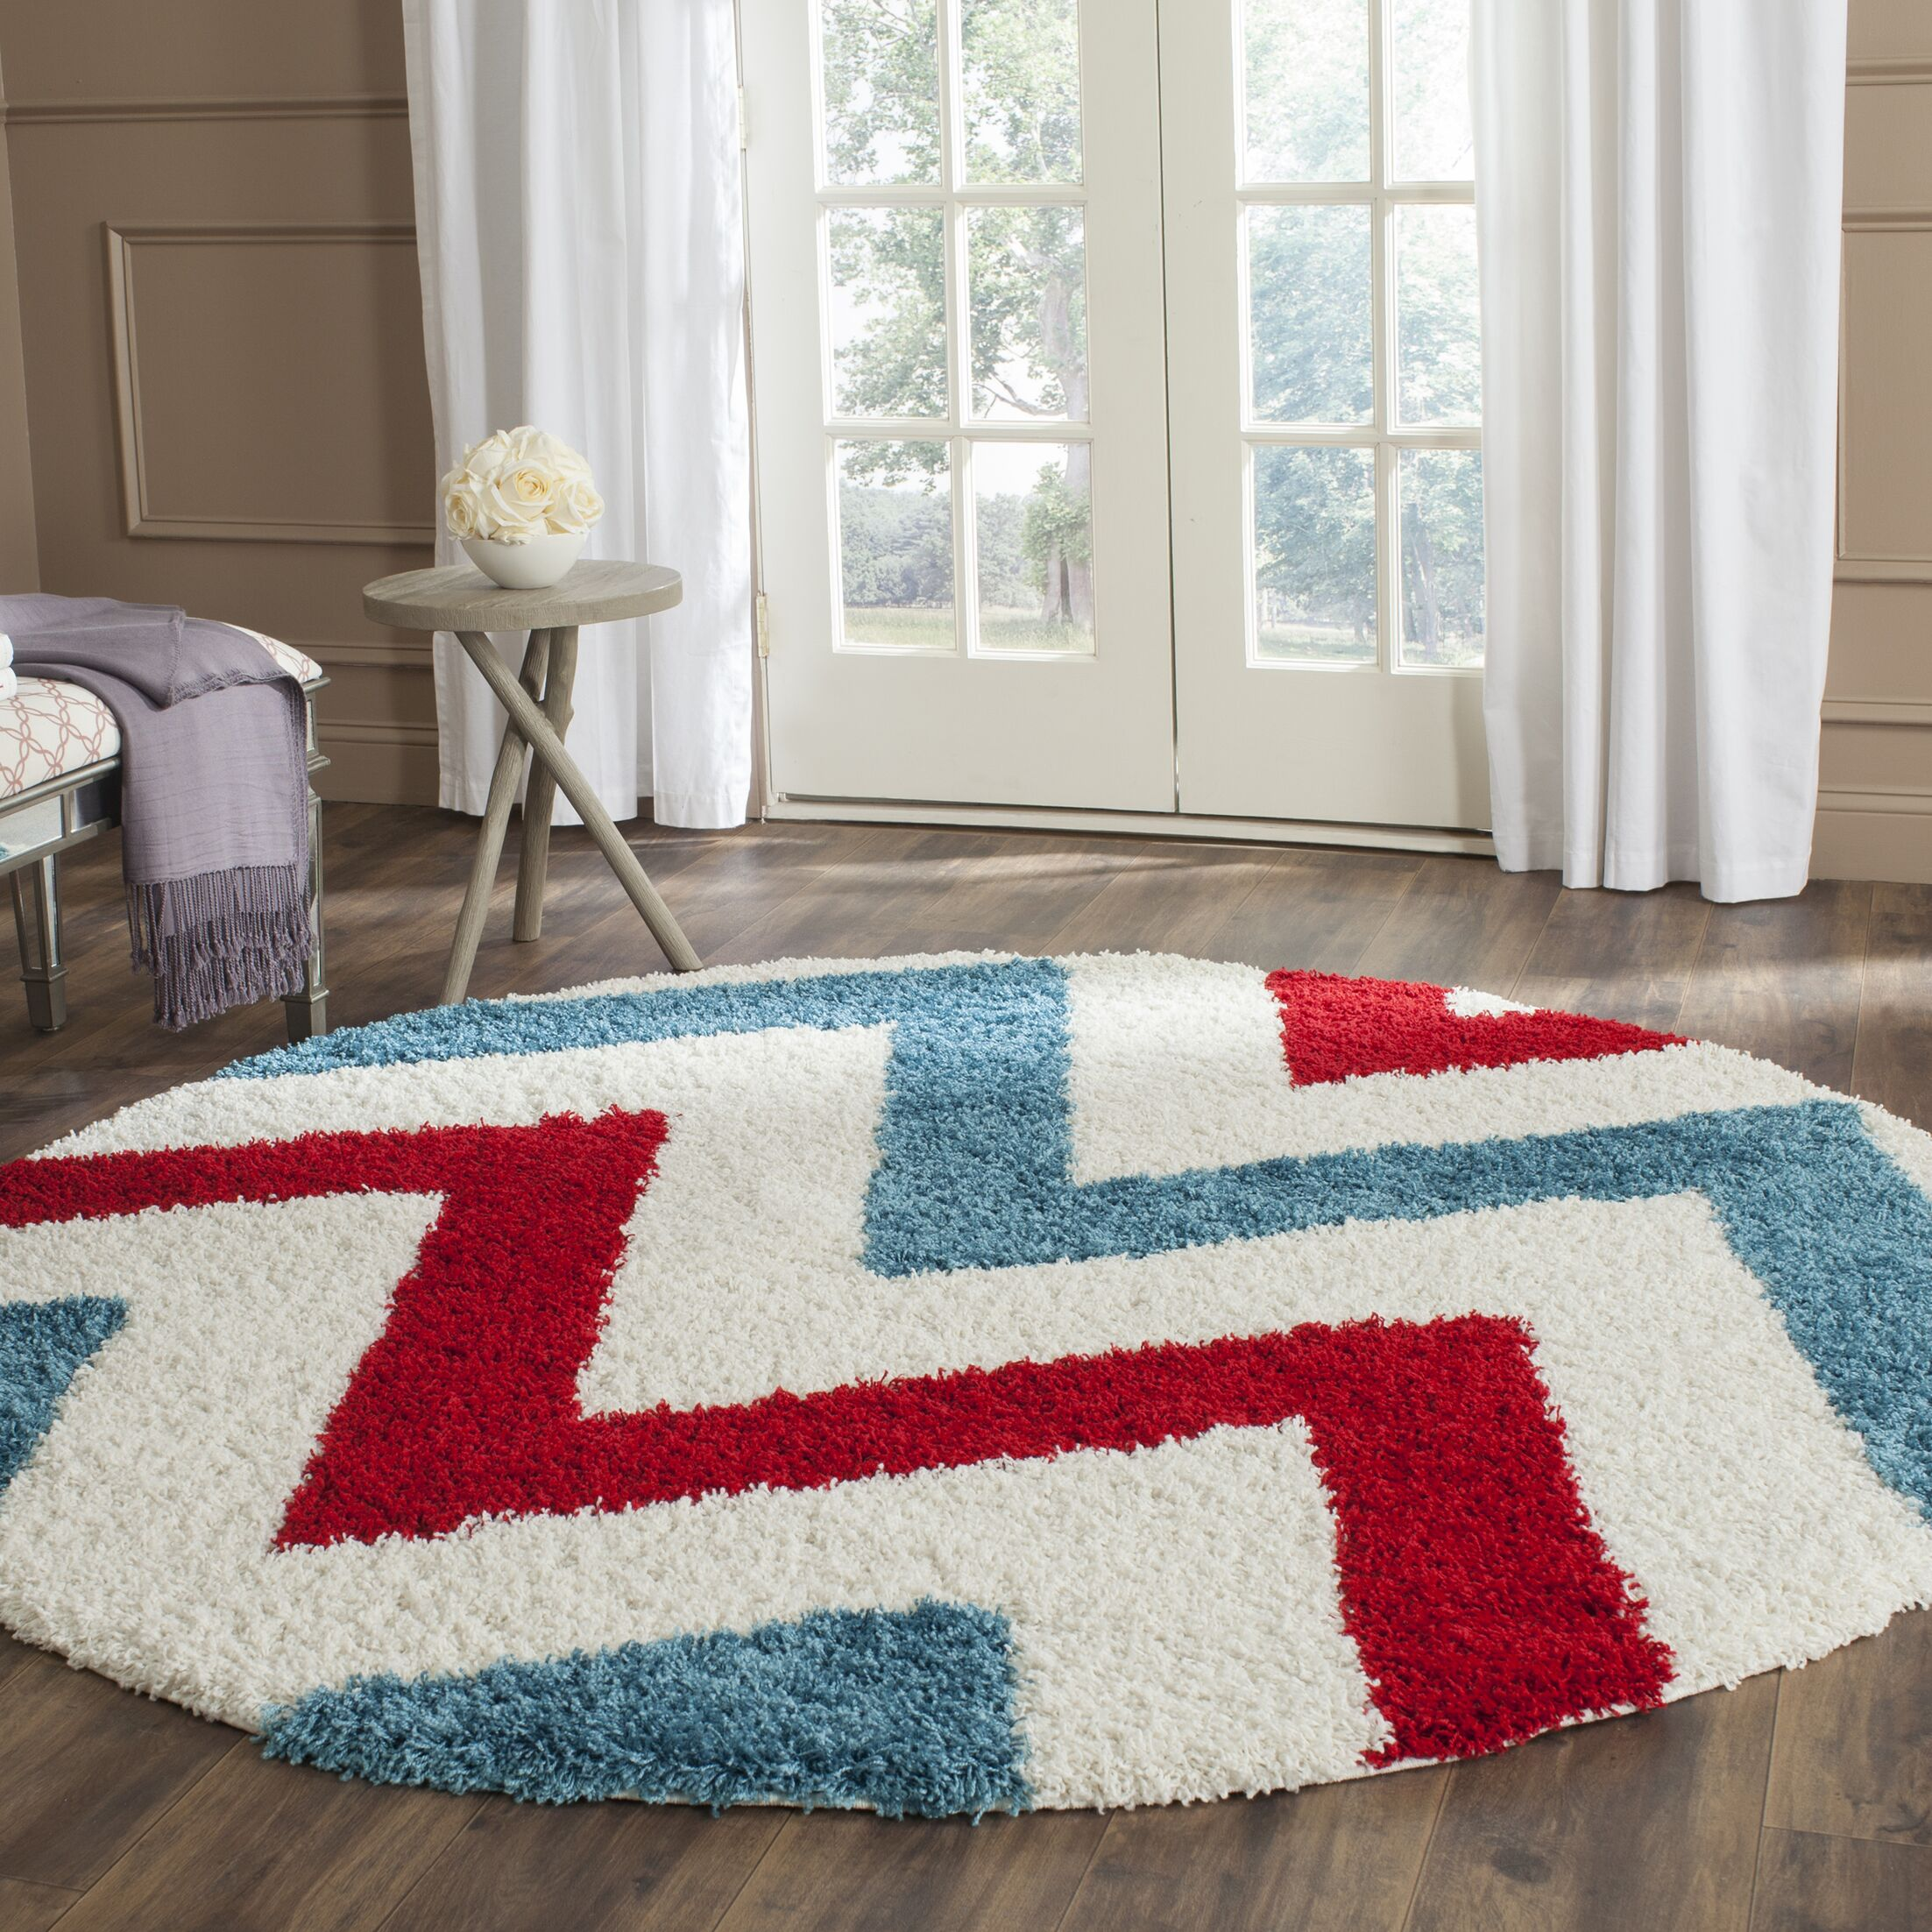 Gist Kids Ivory & Red Shag Area Rug Rug Size: Rectangle 8'6